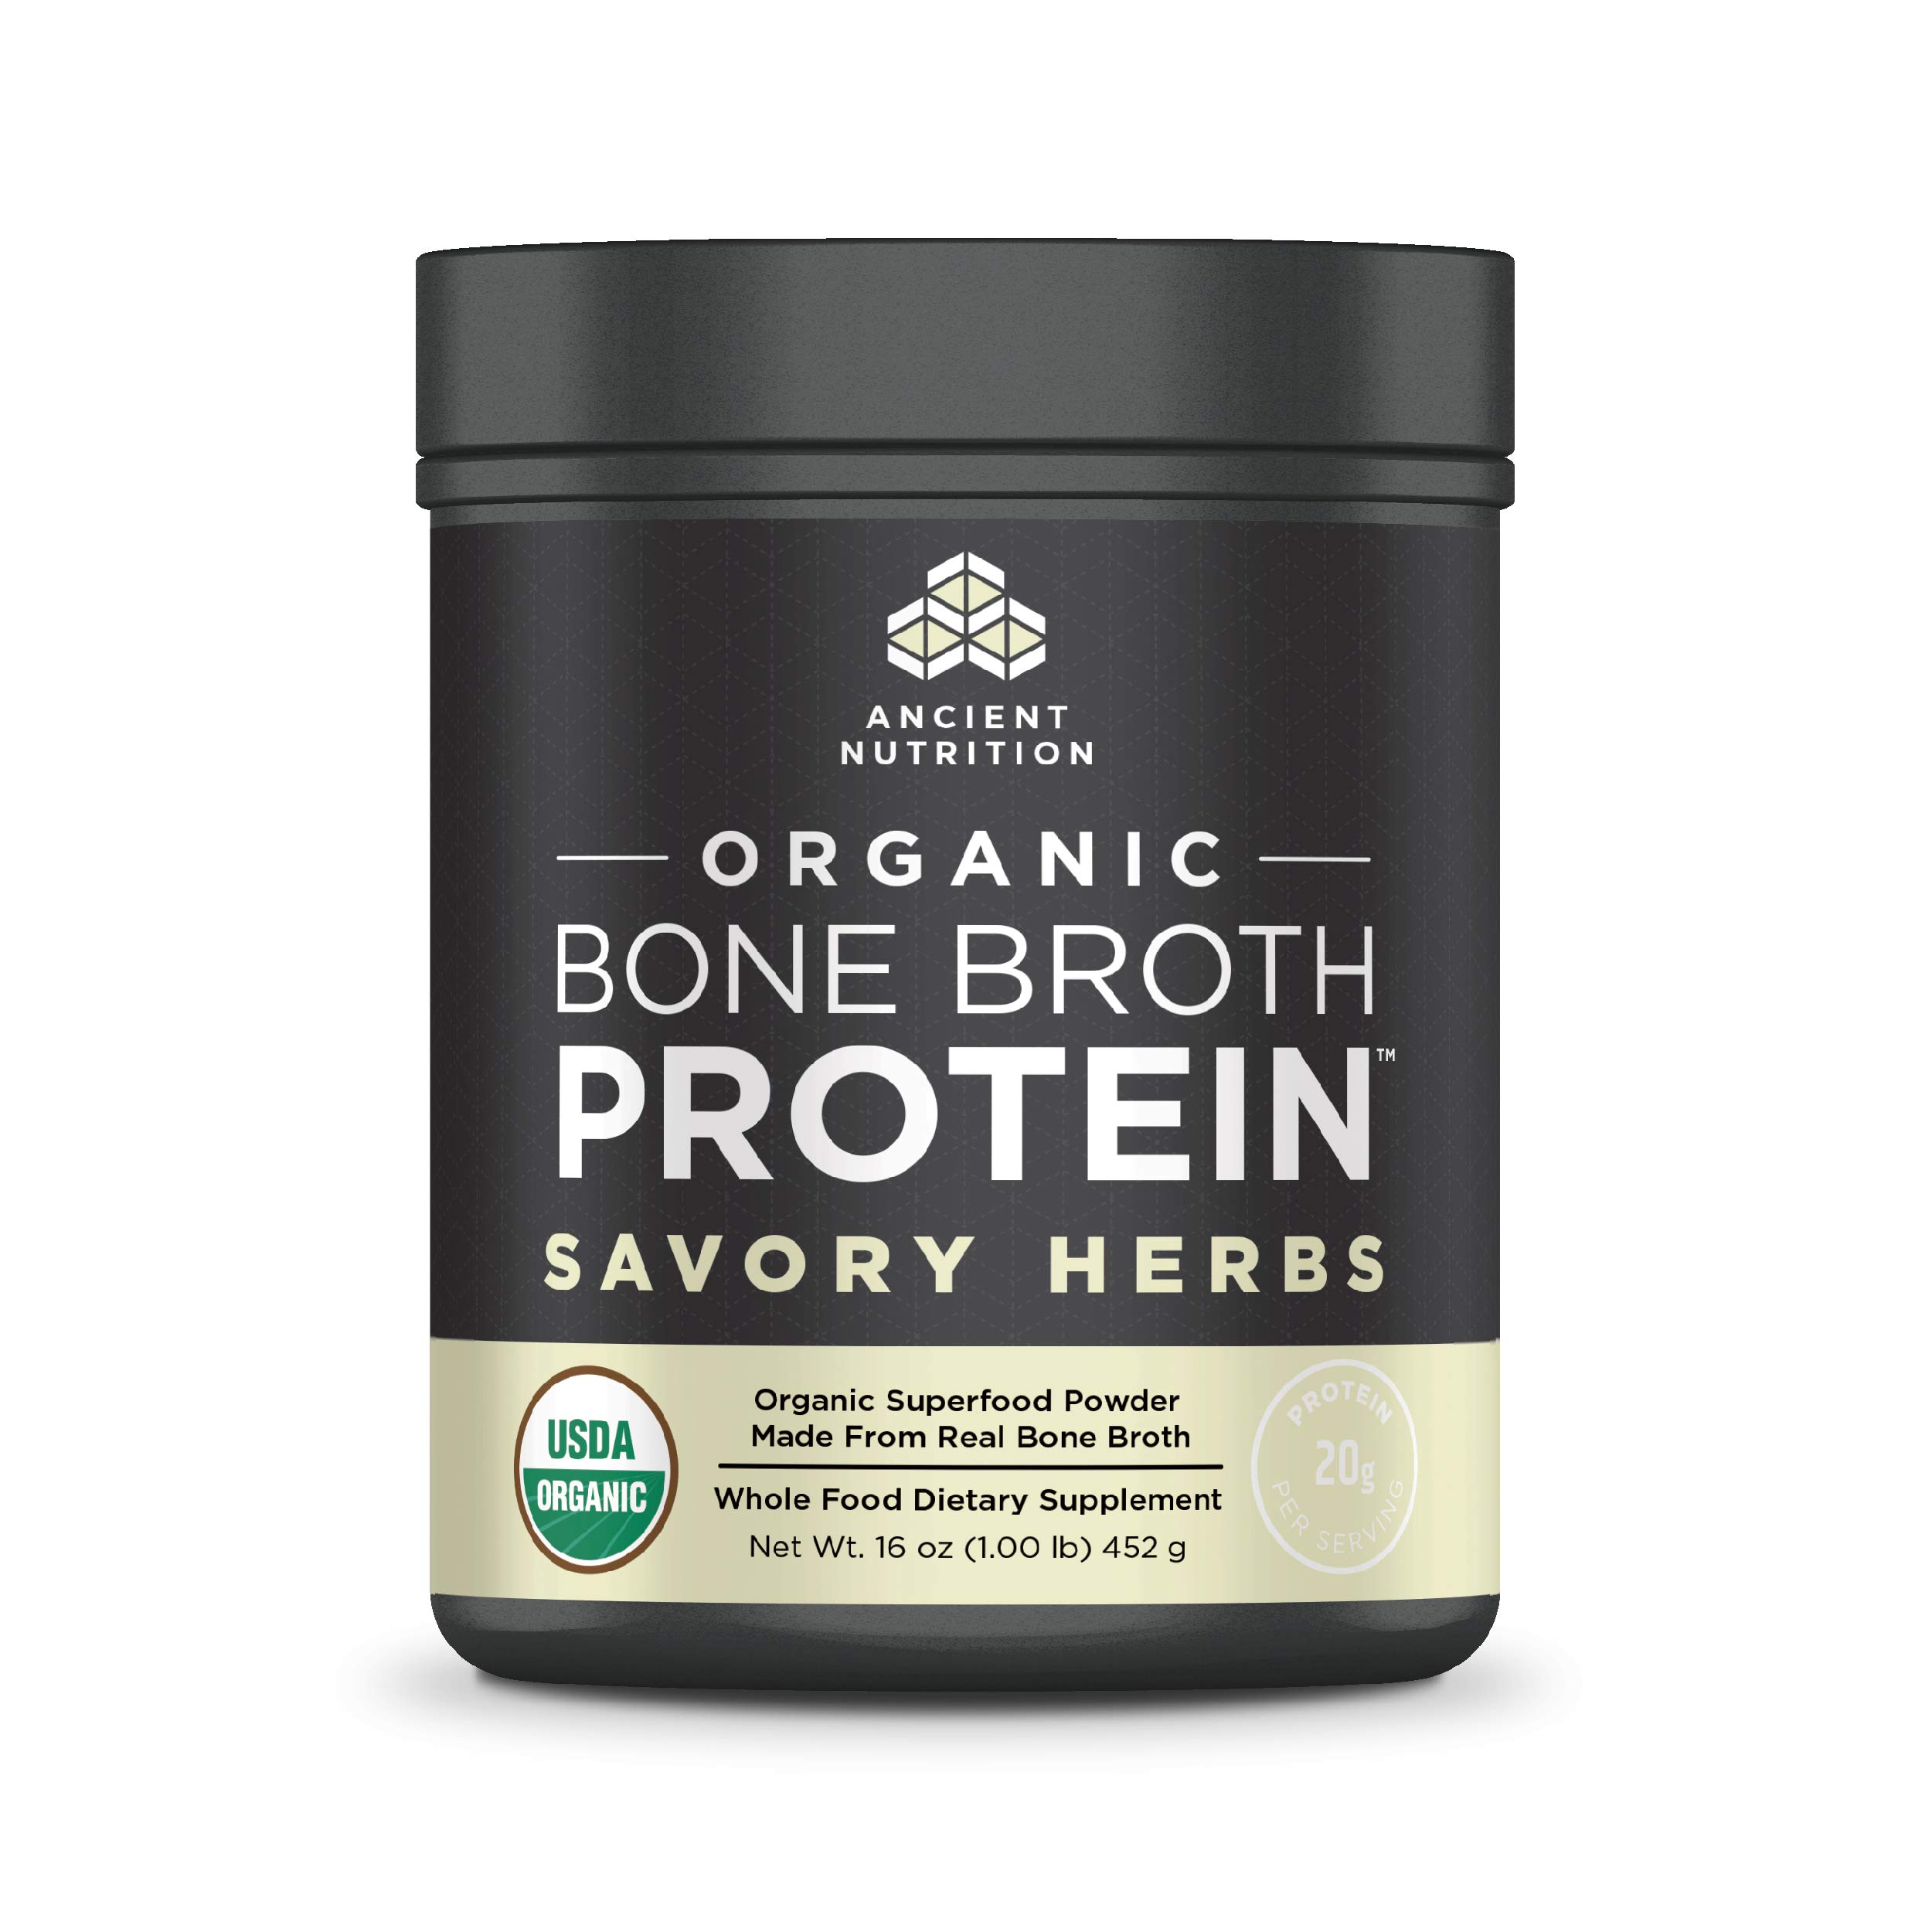 Ancient Nutrition Organic Bone Broth Protein Powder, Savory Herbs Flavor, 17 Servings Size - Organic, Gut-Friendly, Paleo-Friendly by Ancient Nutrition